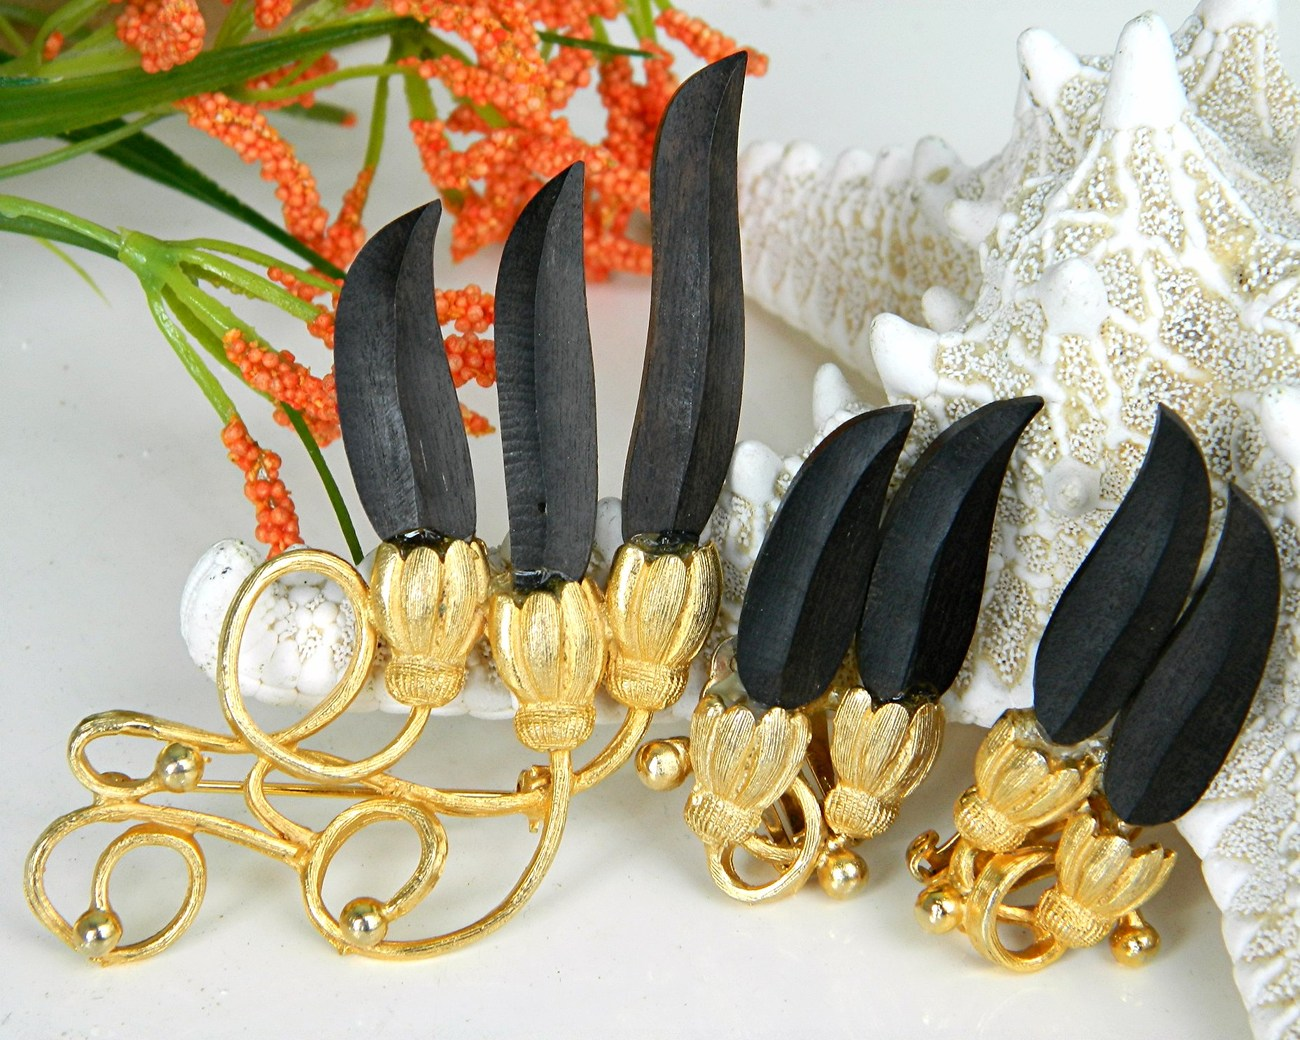 Viintage wood brooch earrings set black gold flowers petals